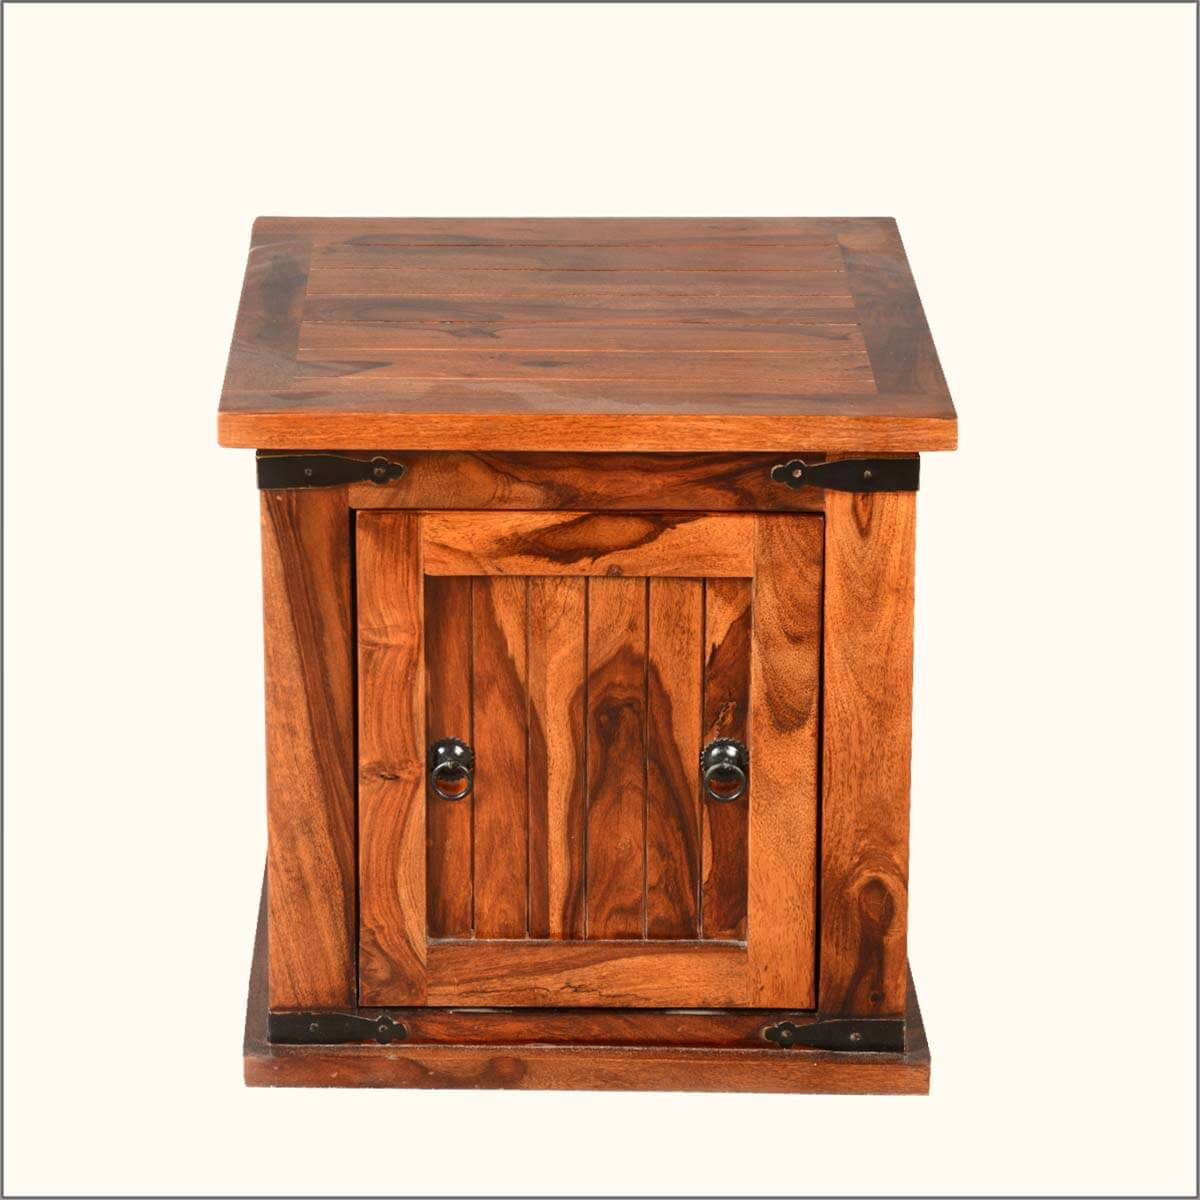 sofa side table wood how to make cushions more comfortable solid square storage box trunk end